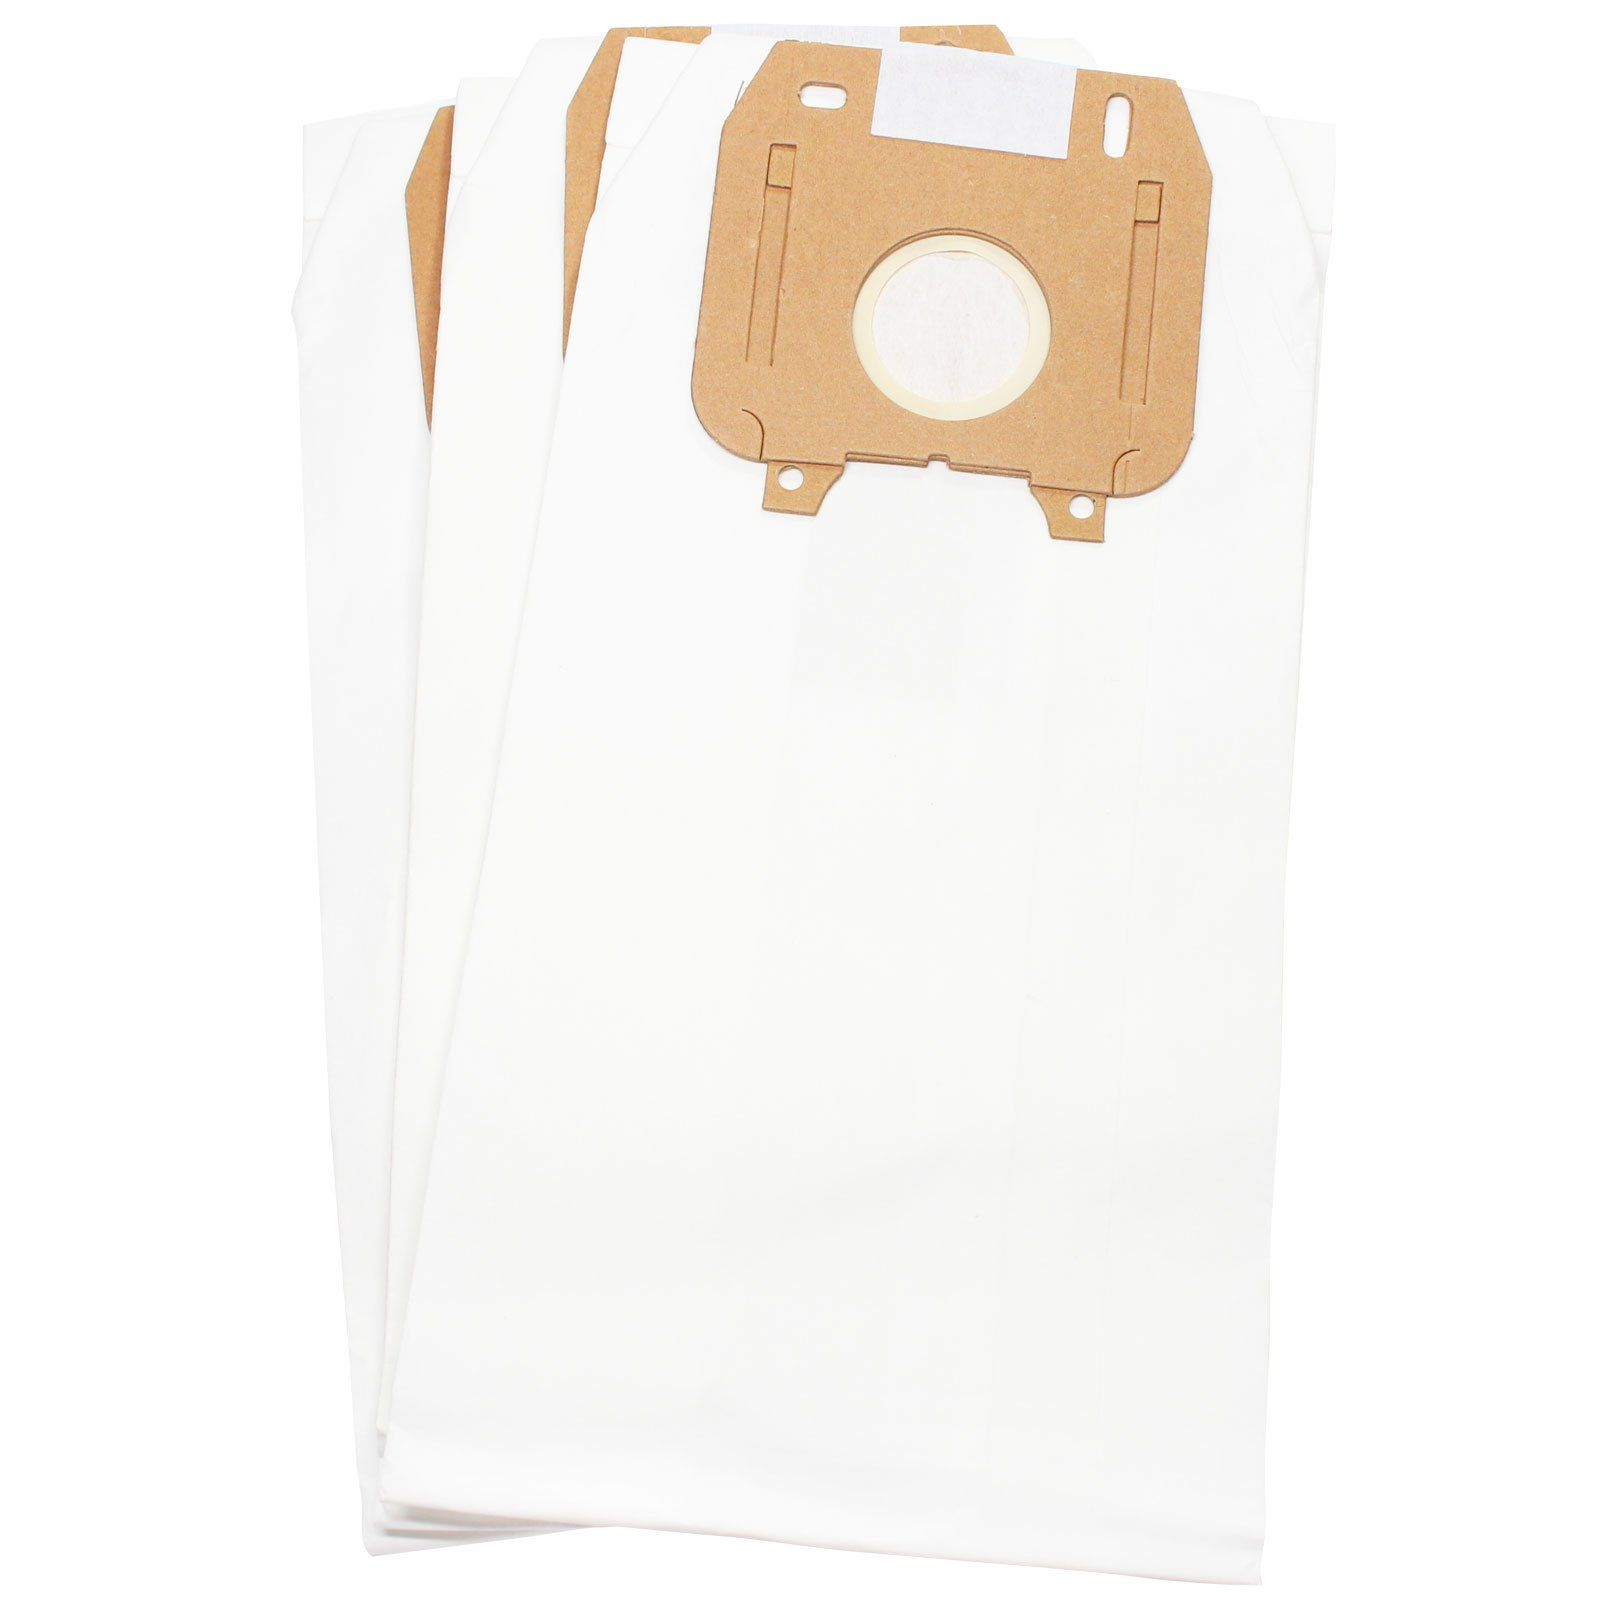 6 Vacuum Bags for Oreck OR-1451 714 LW1500RS